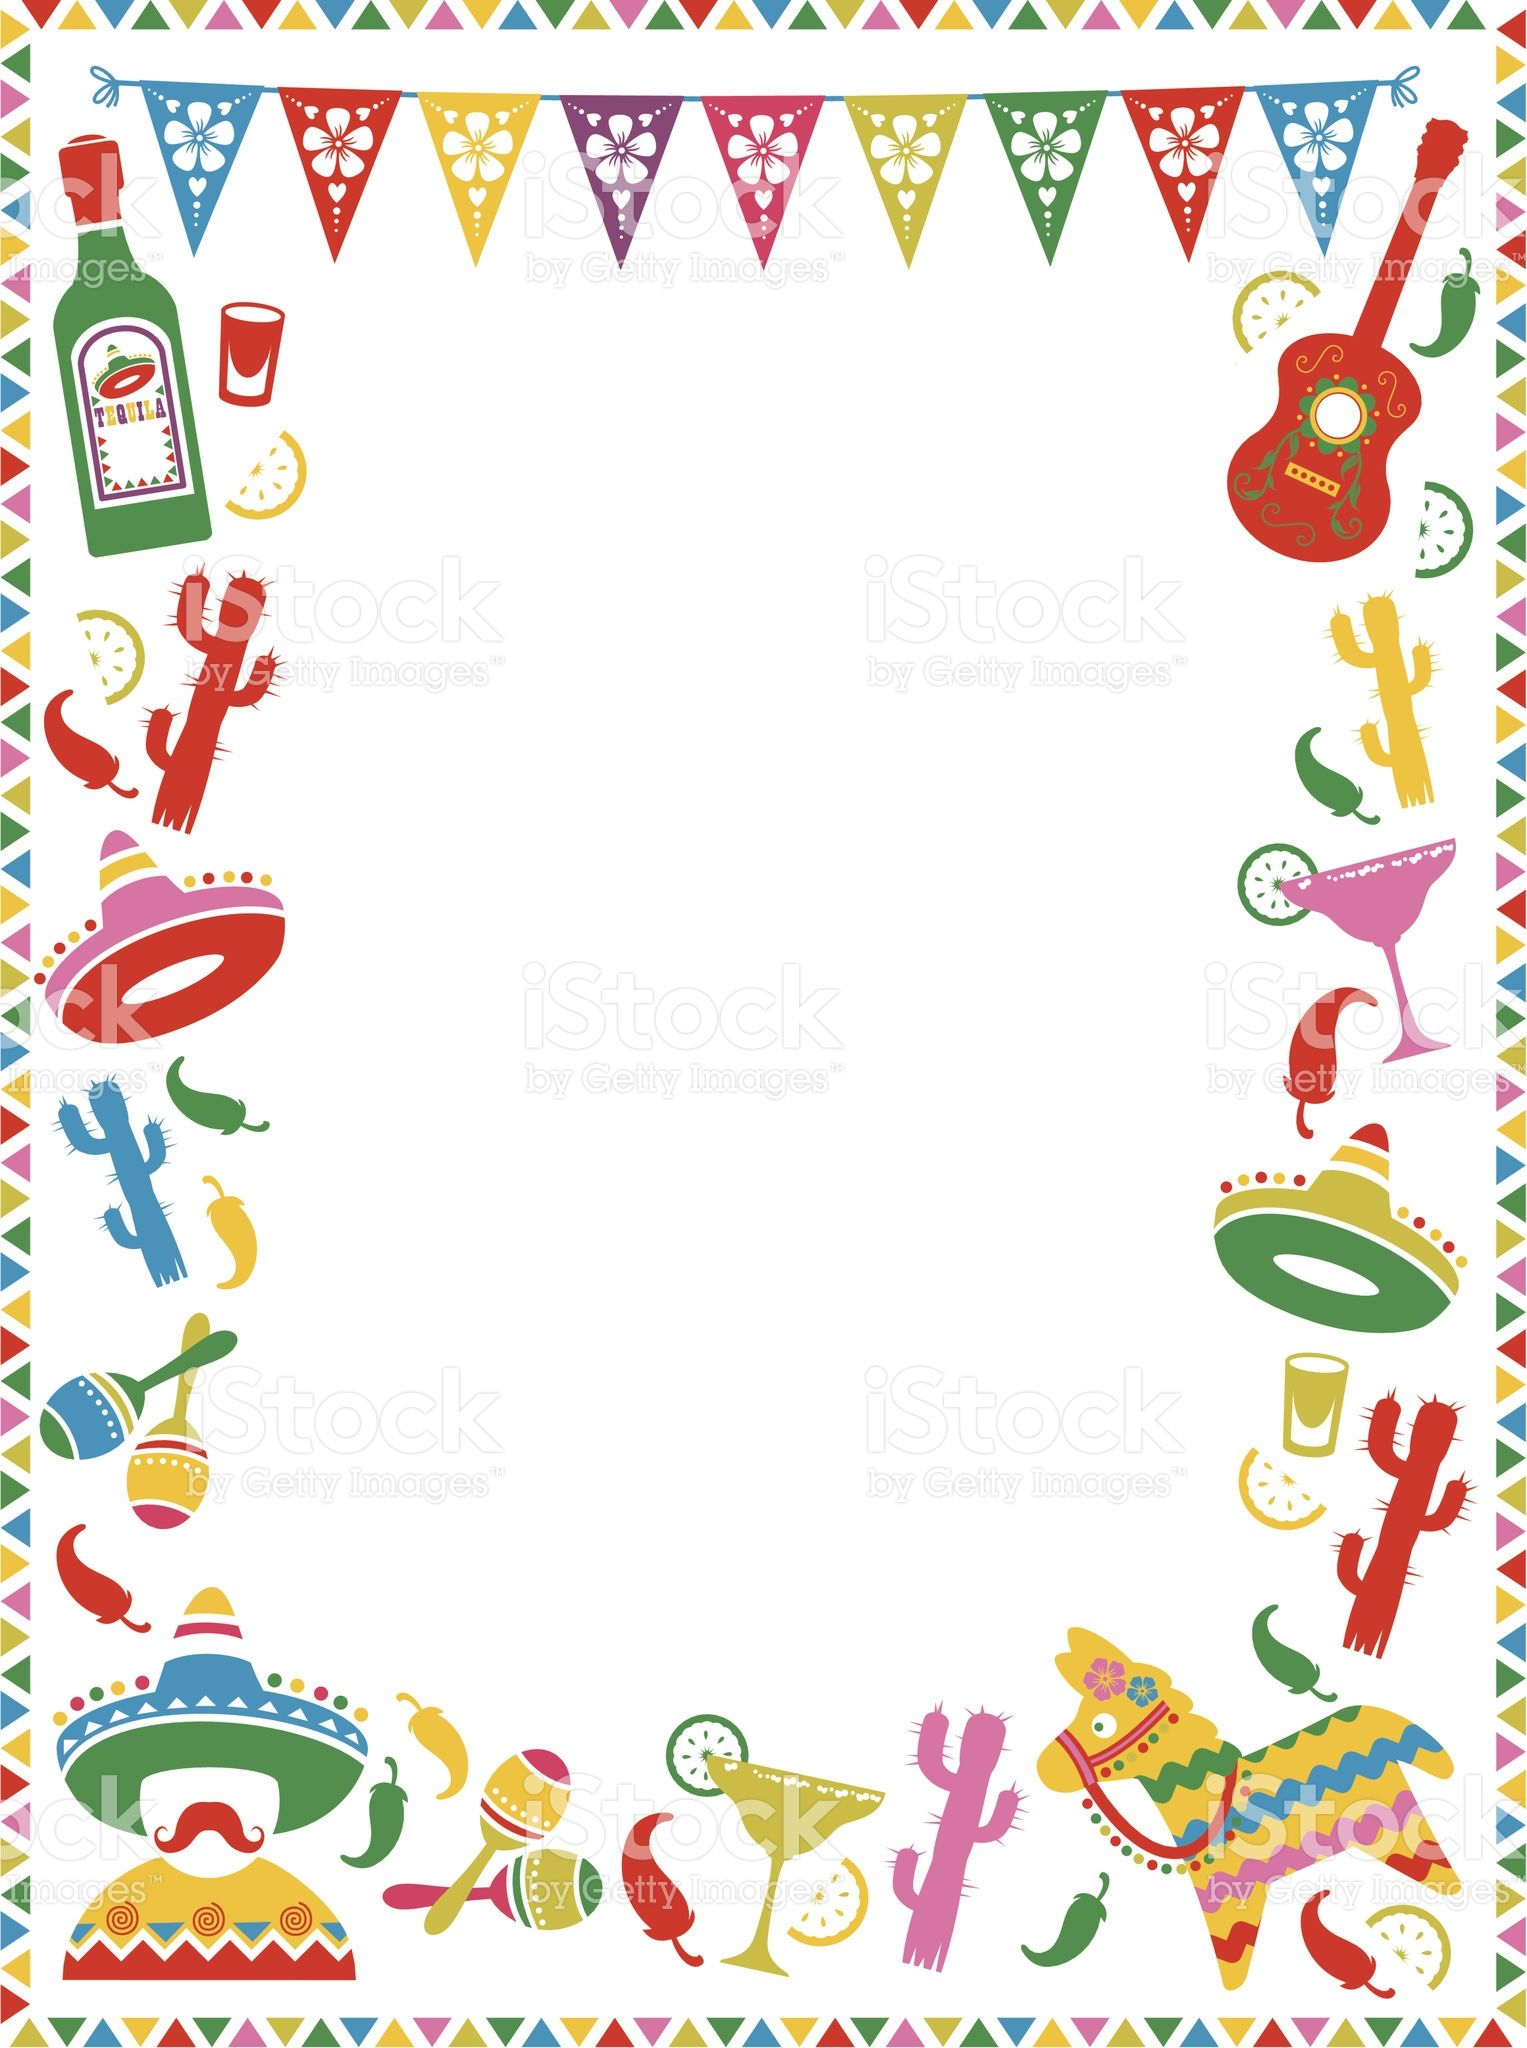 A Mexican Themed Border Ideal For Menus Or Party Invites